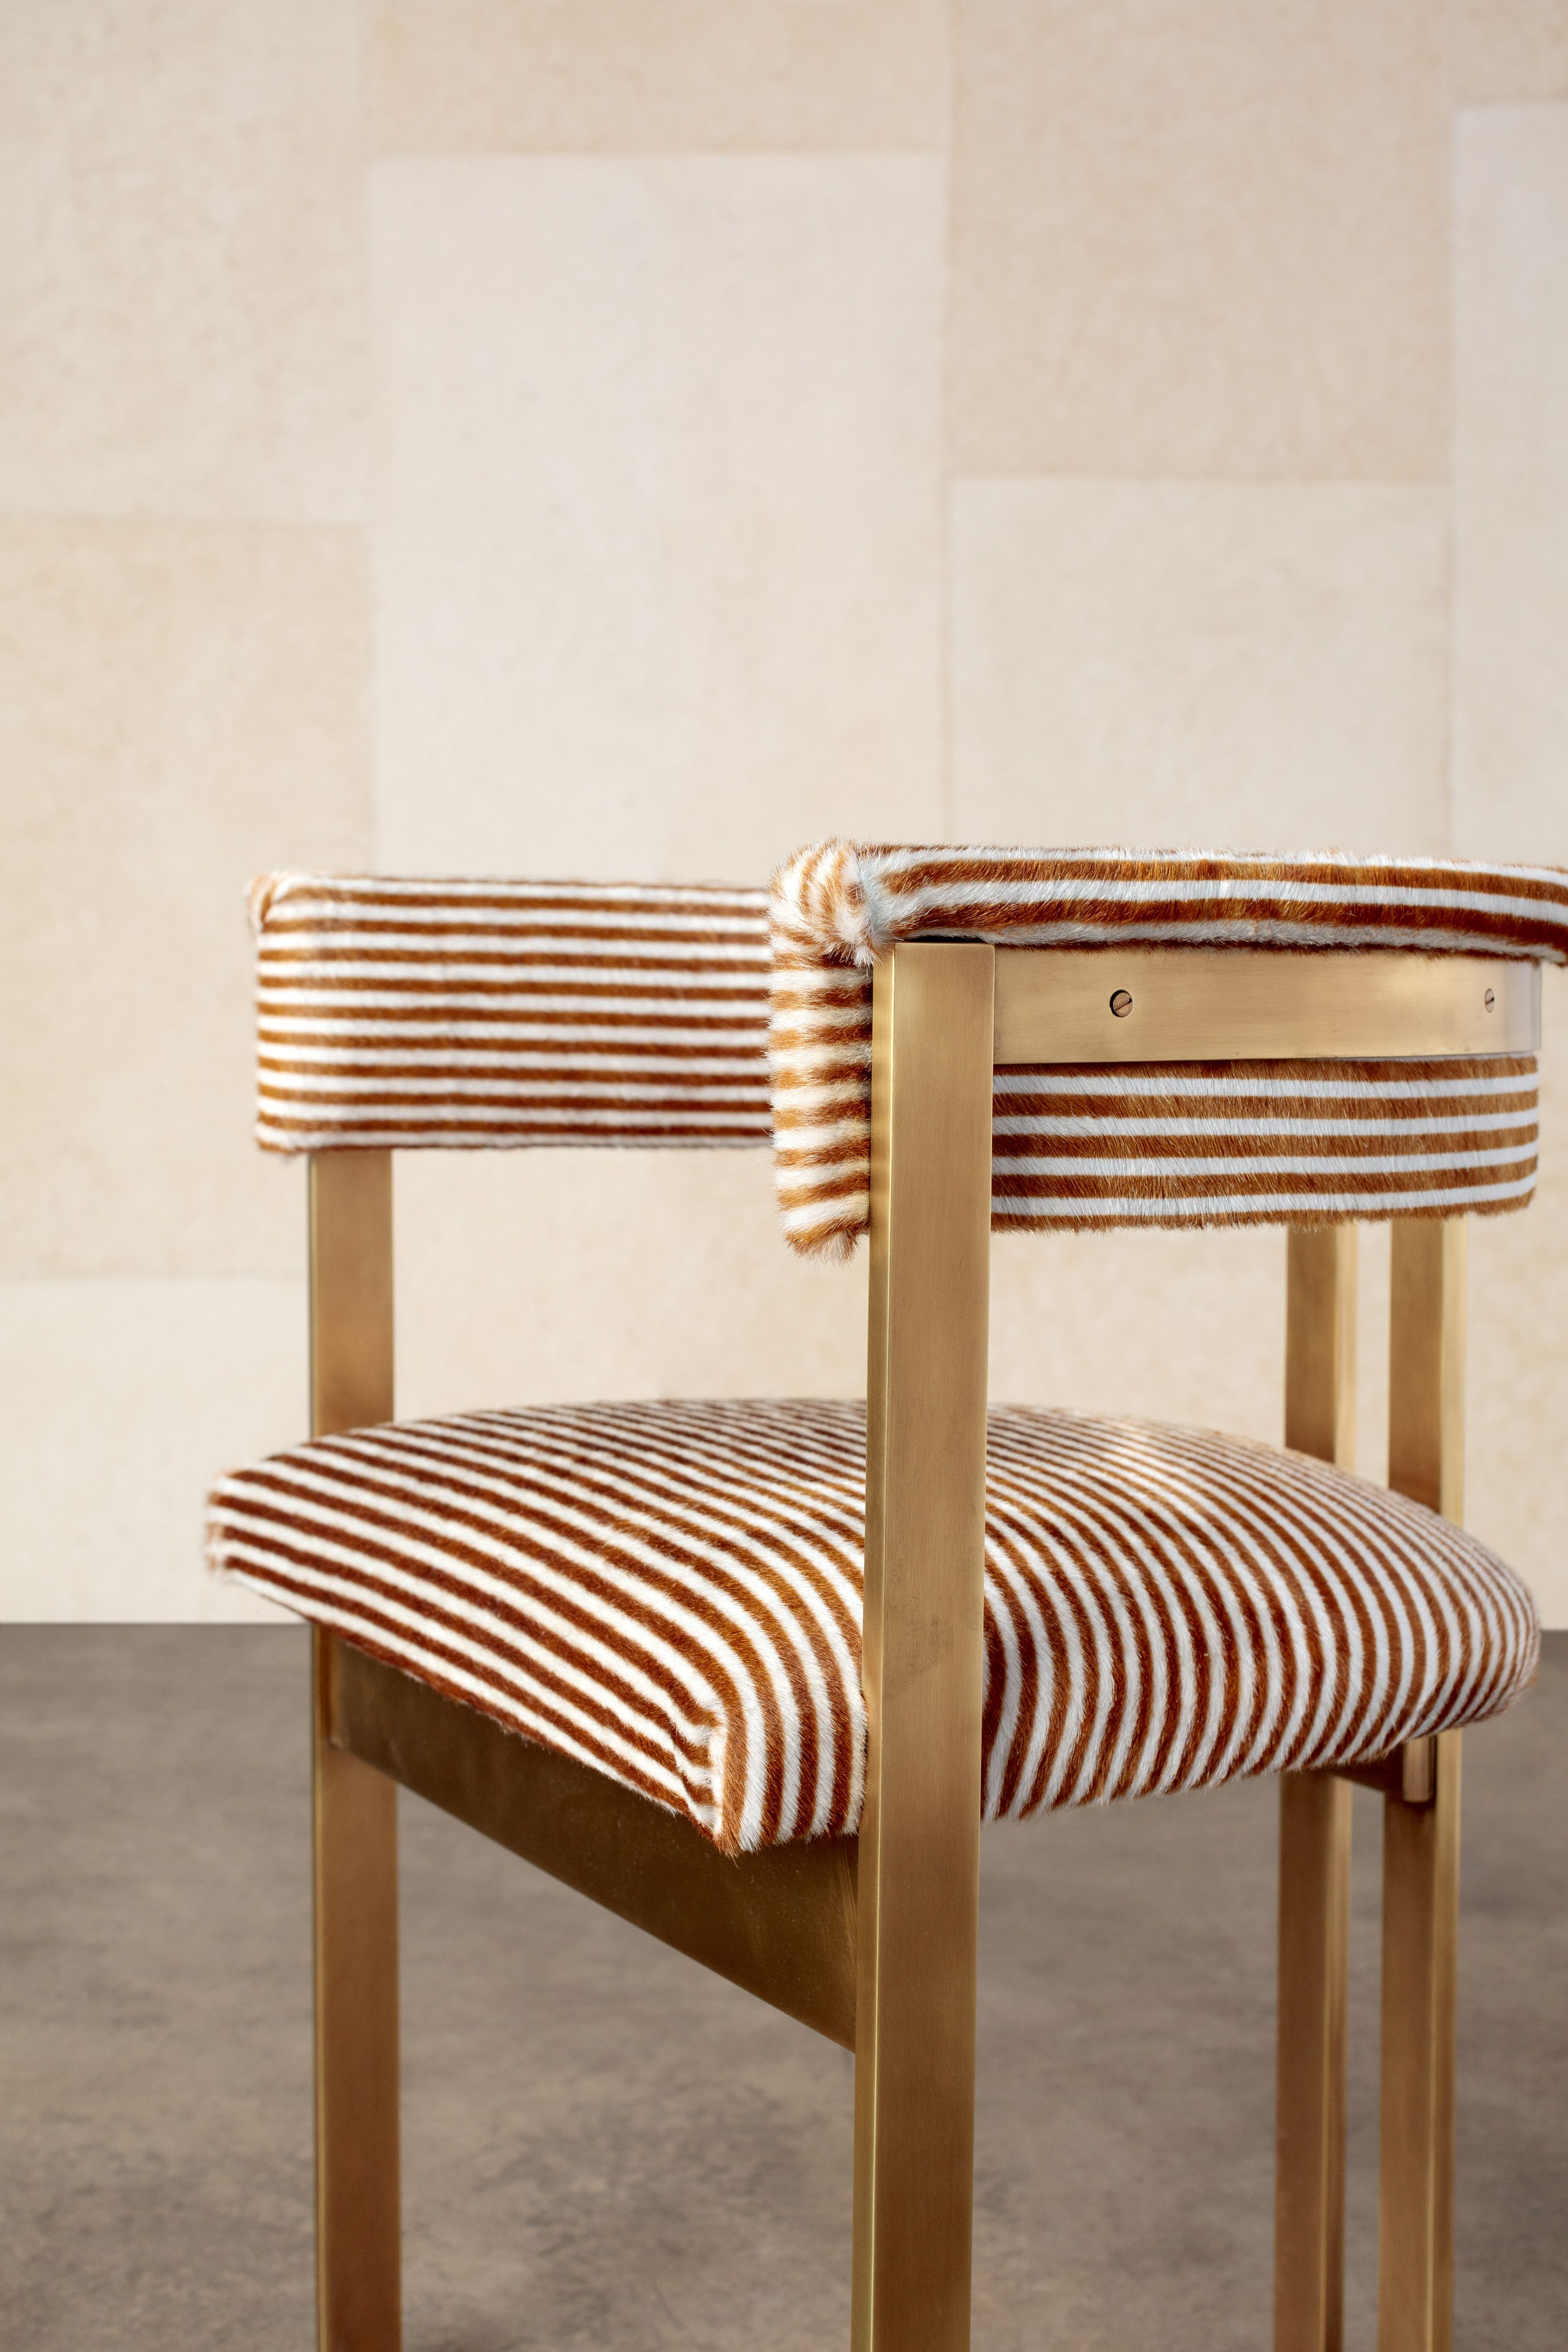 Kelly wearstler icon hide thoughtfully colored and refined this distinctive pattern is designed to work in either direction amazing as an upholstery